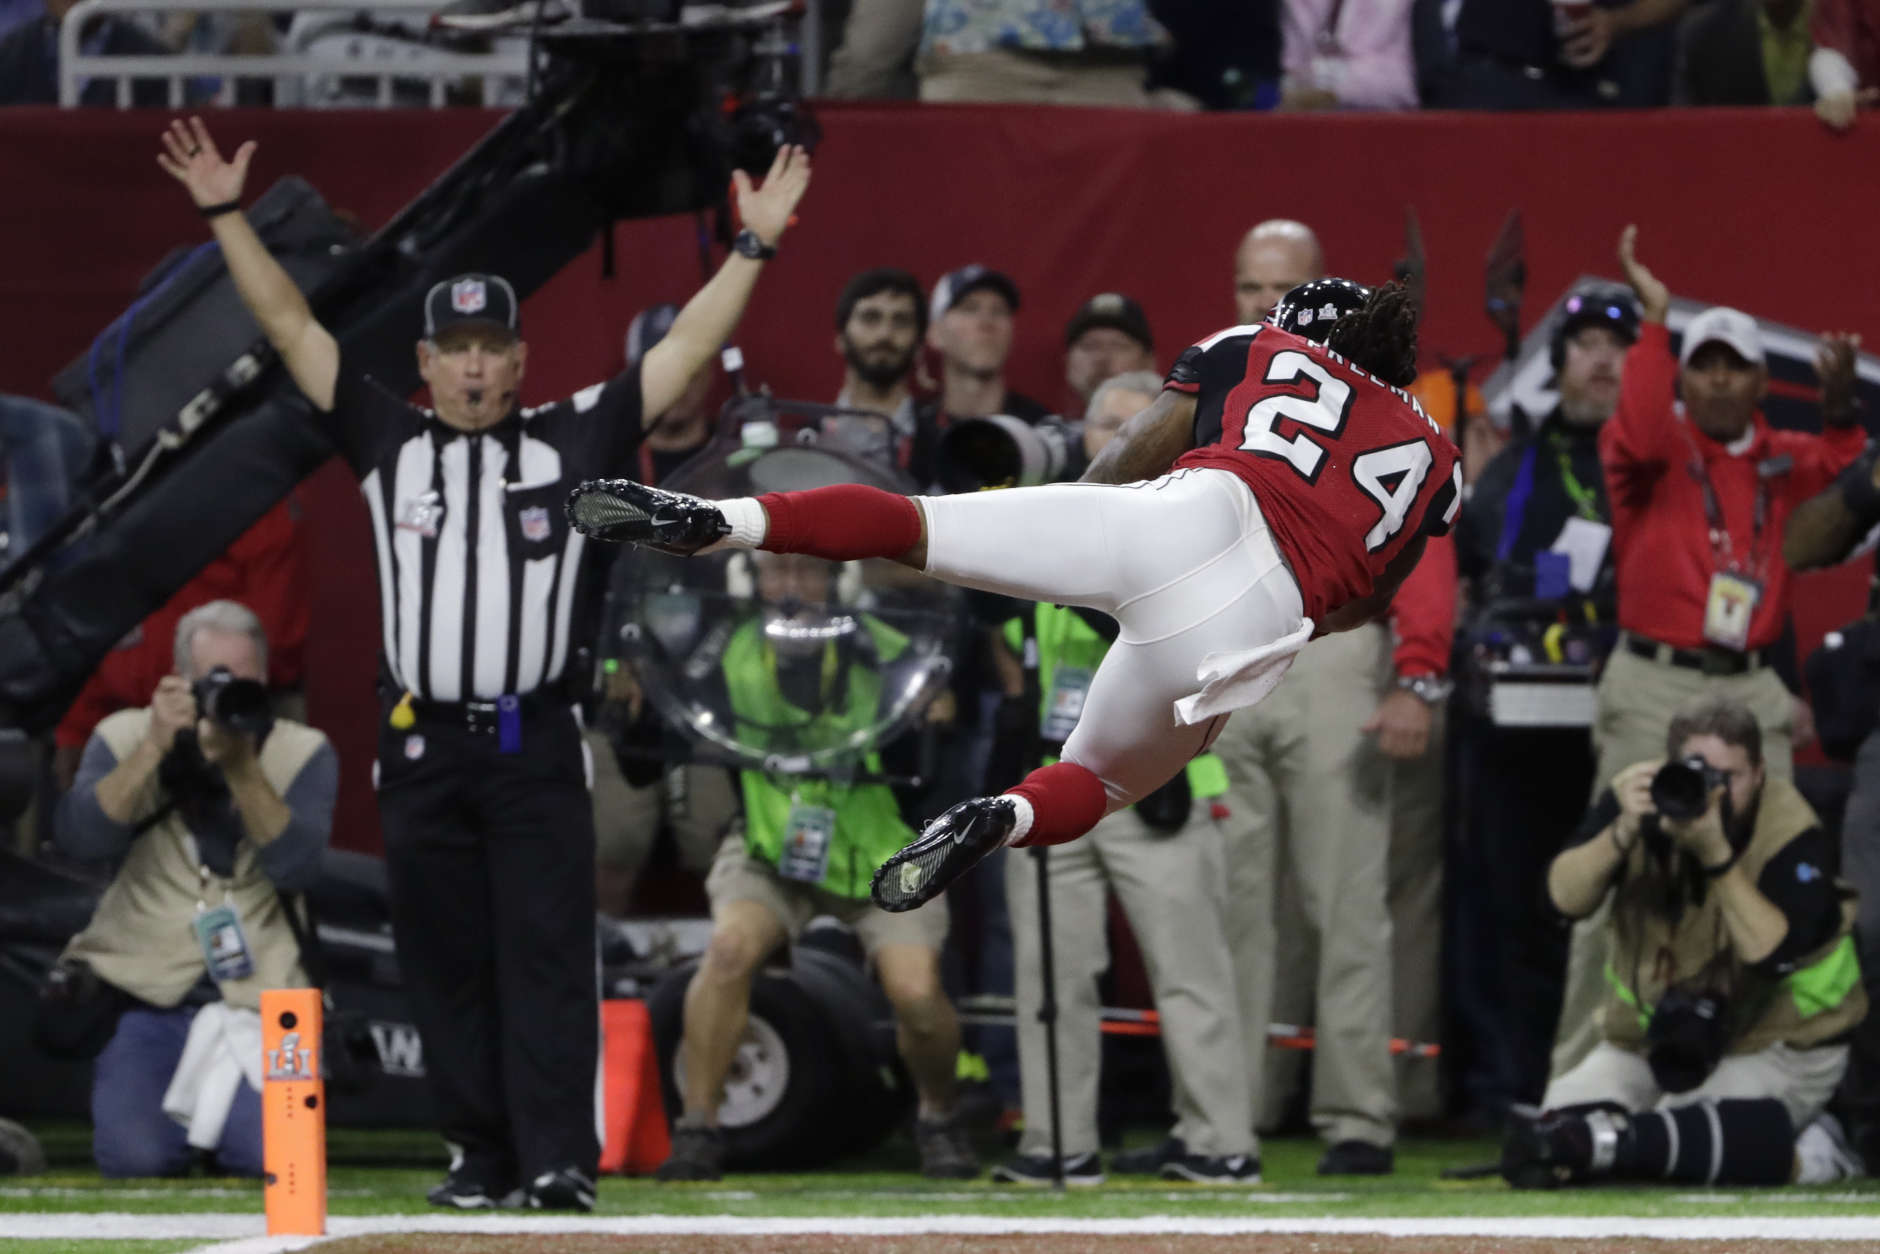 Atlanta Falcons' Devonta Freeman dives in the end zone after scoring a touchdown during the first half of the NFL Super Bowl 51 football game Sunday, Feb. 5, 2017, in Houston. (AP Photo/Matt Slocum)